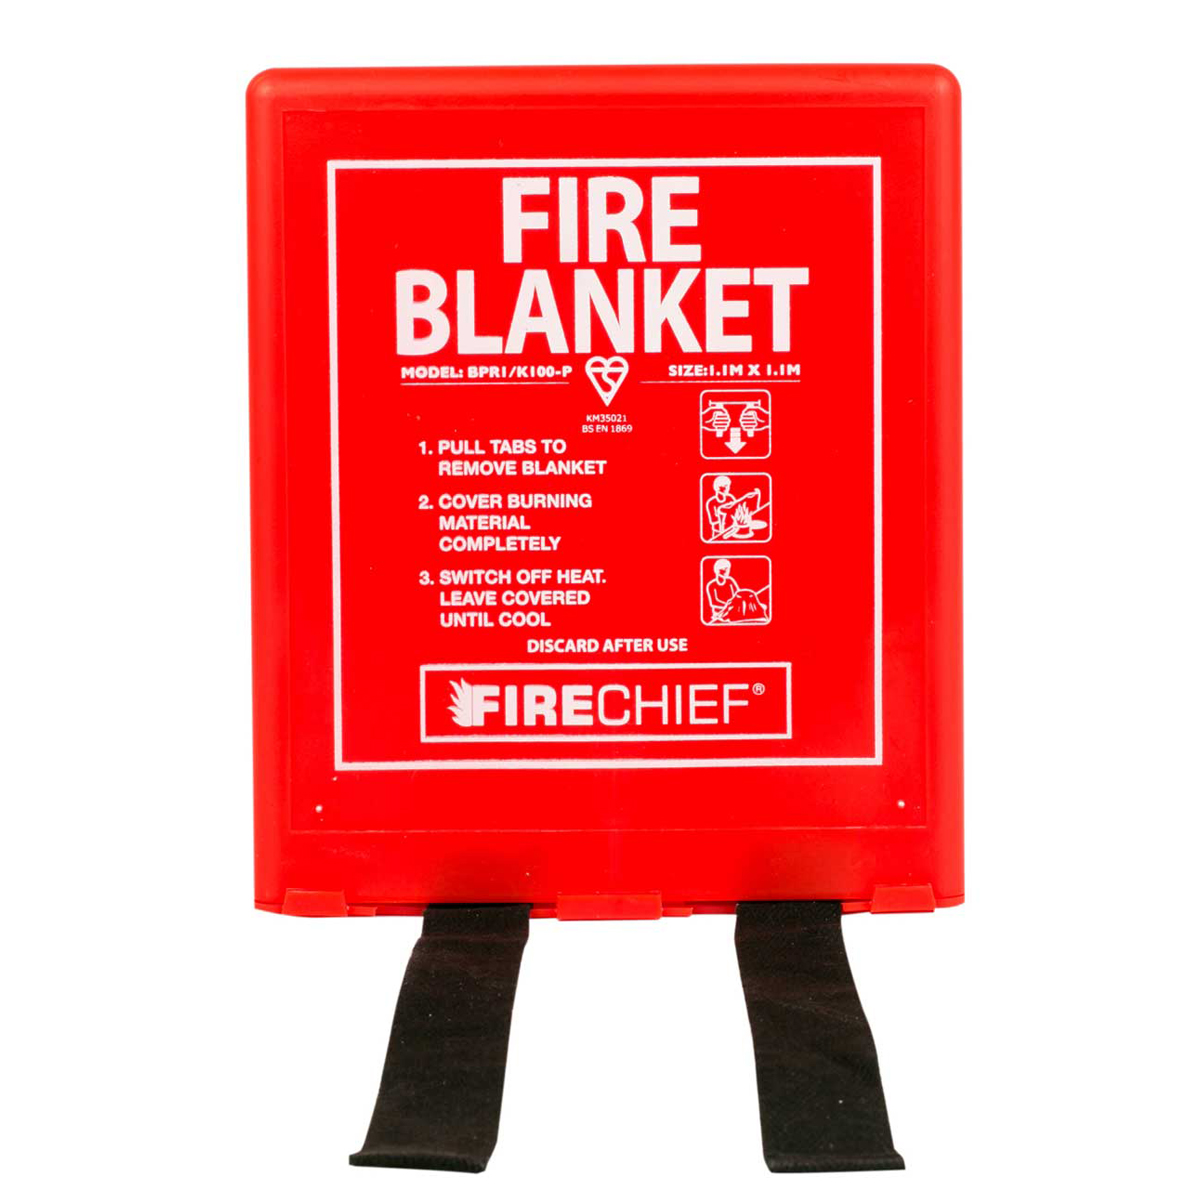 1 x 1m Fire Blanket in Rigid Case